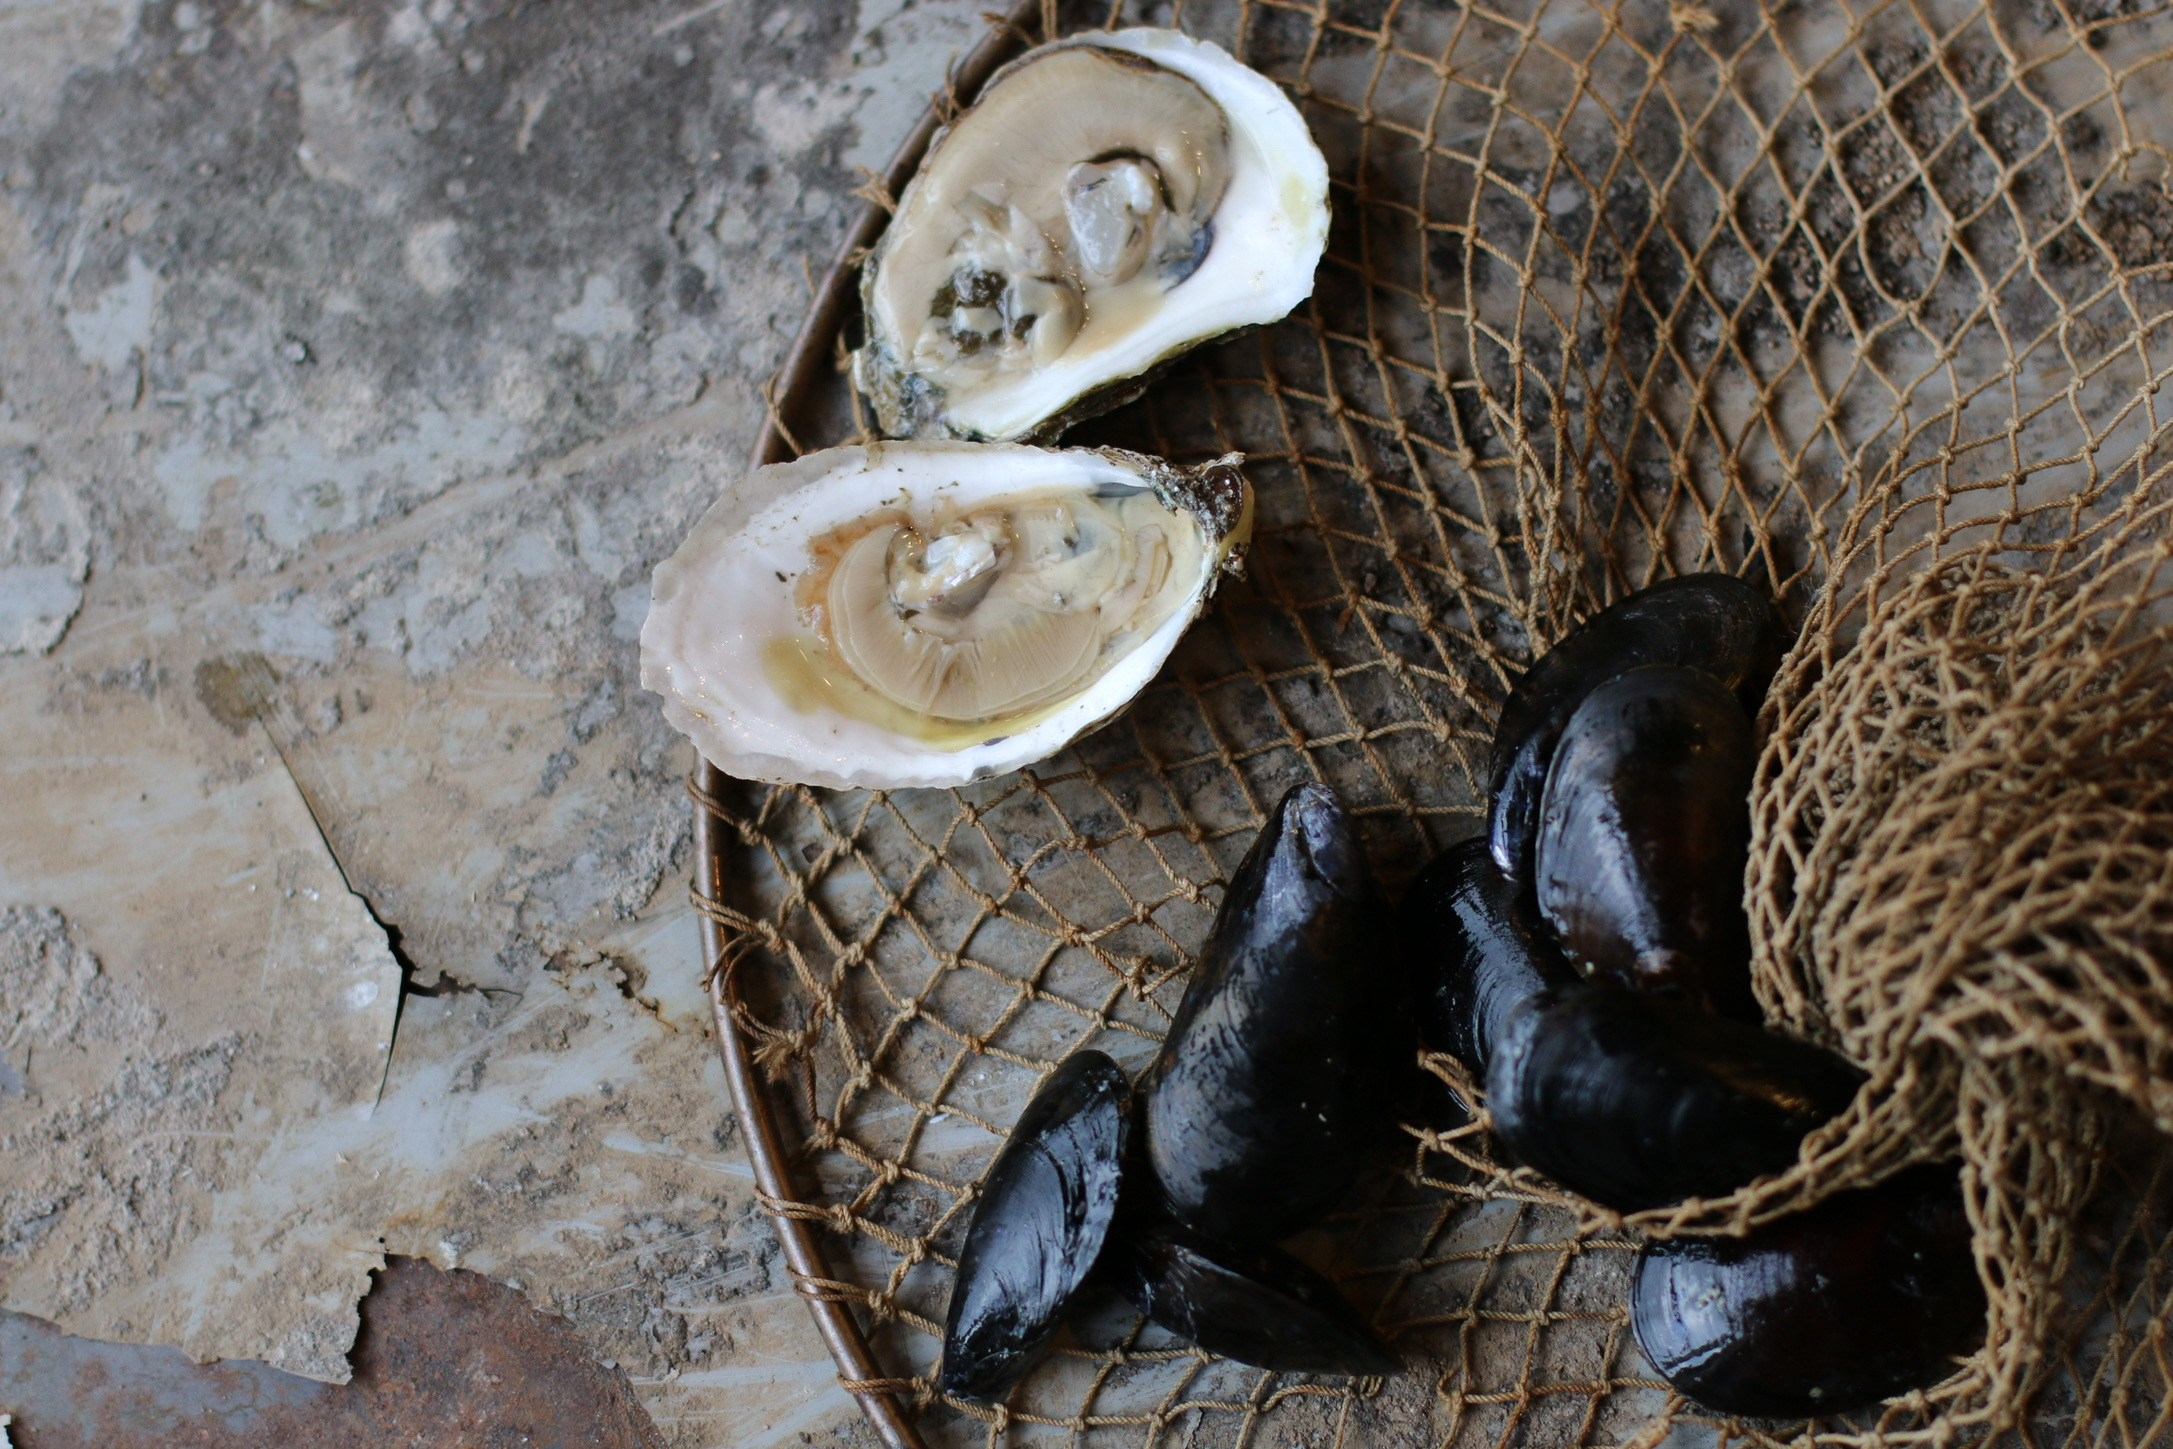 Jack Lukey's Oyster Saloon & Caviar Bar - The freshest catches, served daily